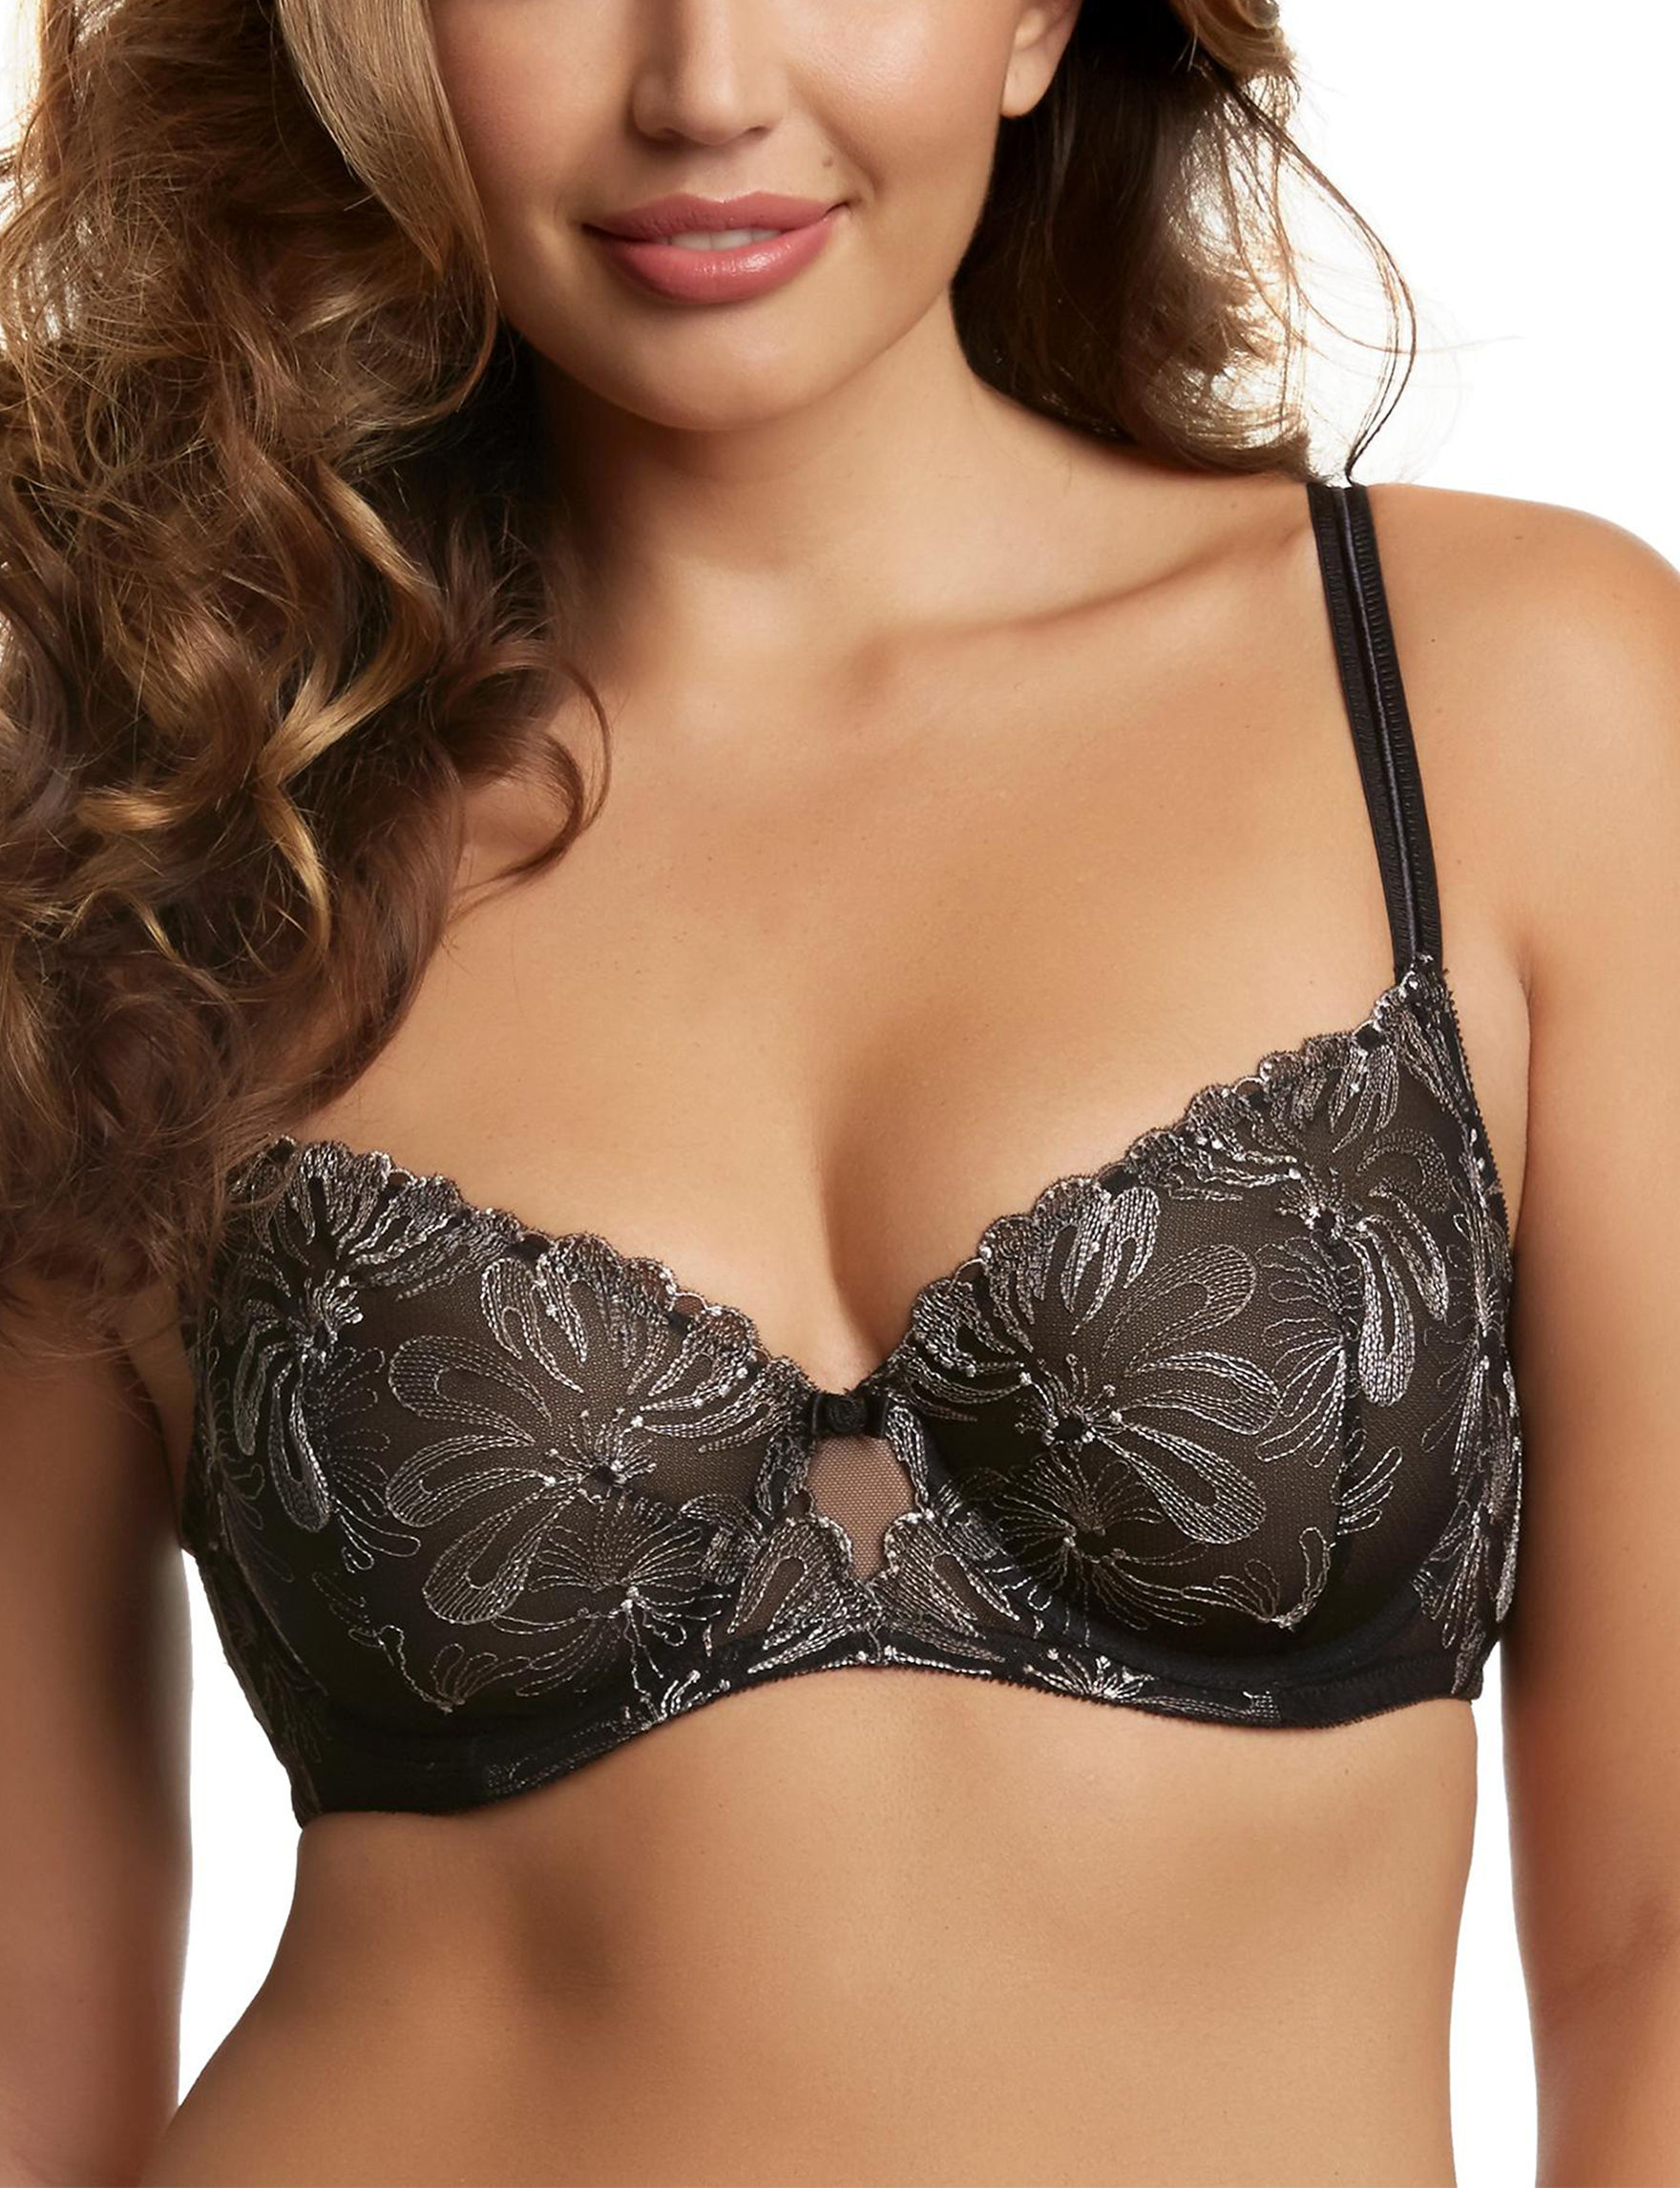 Paramour Black Bras Demi Unlined